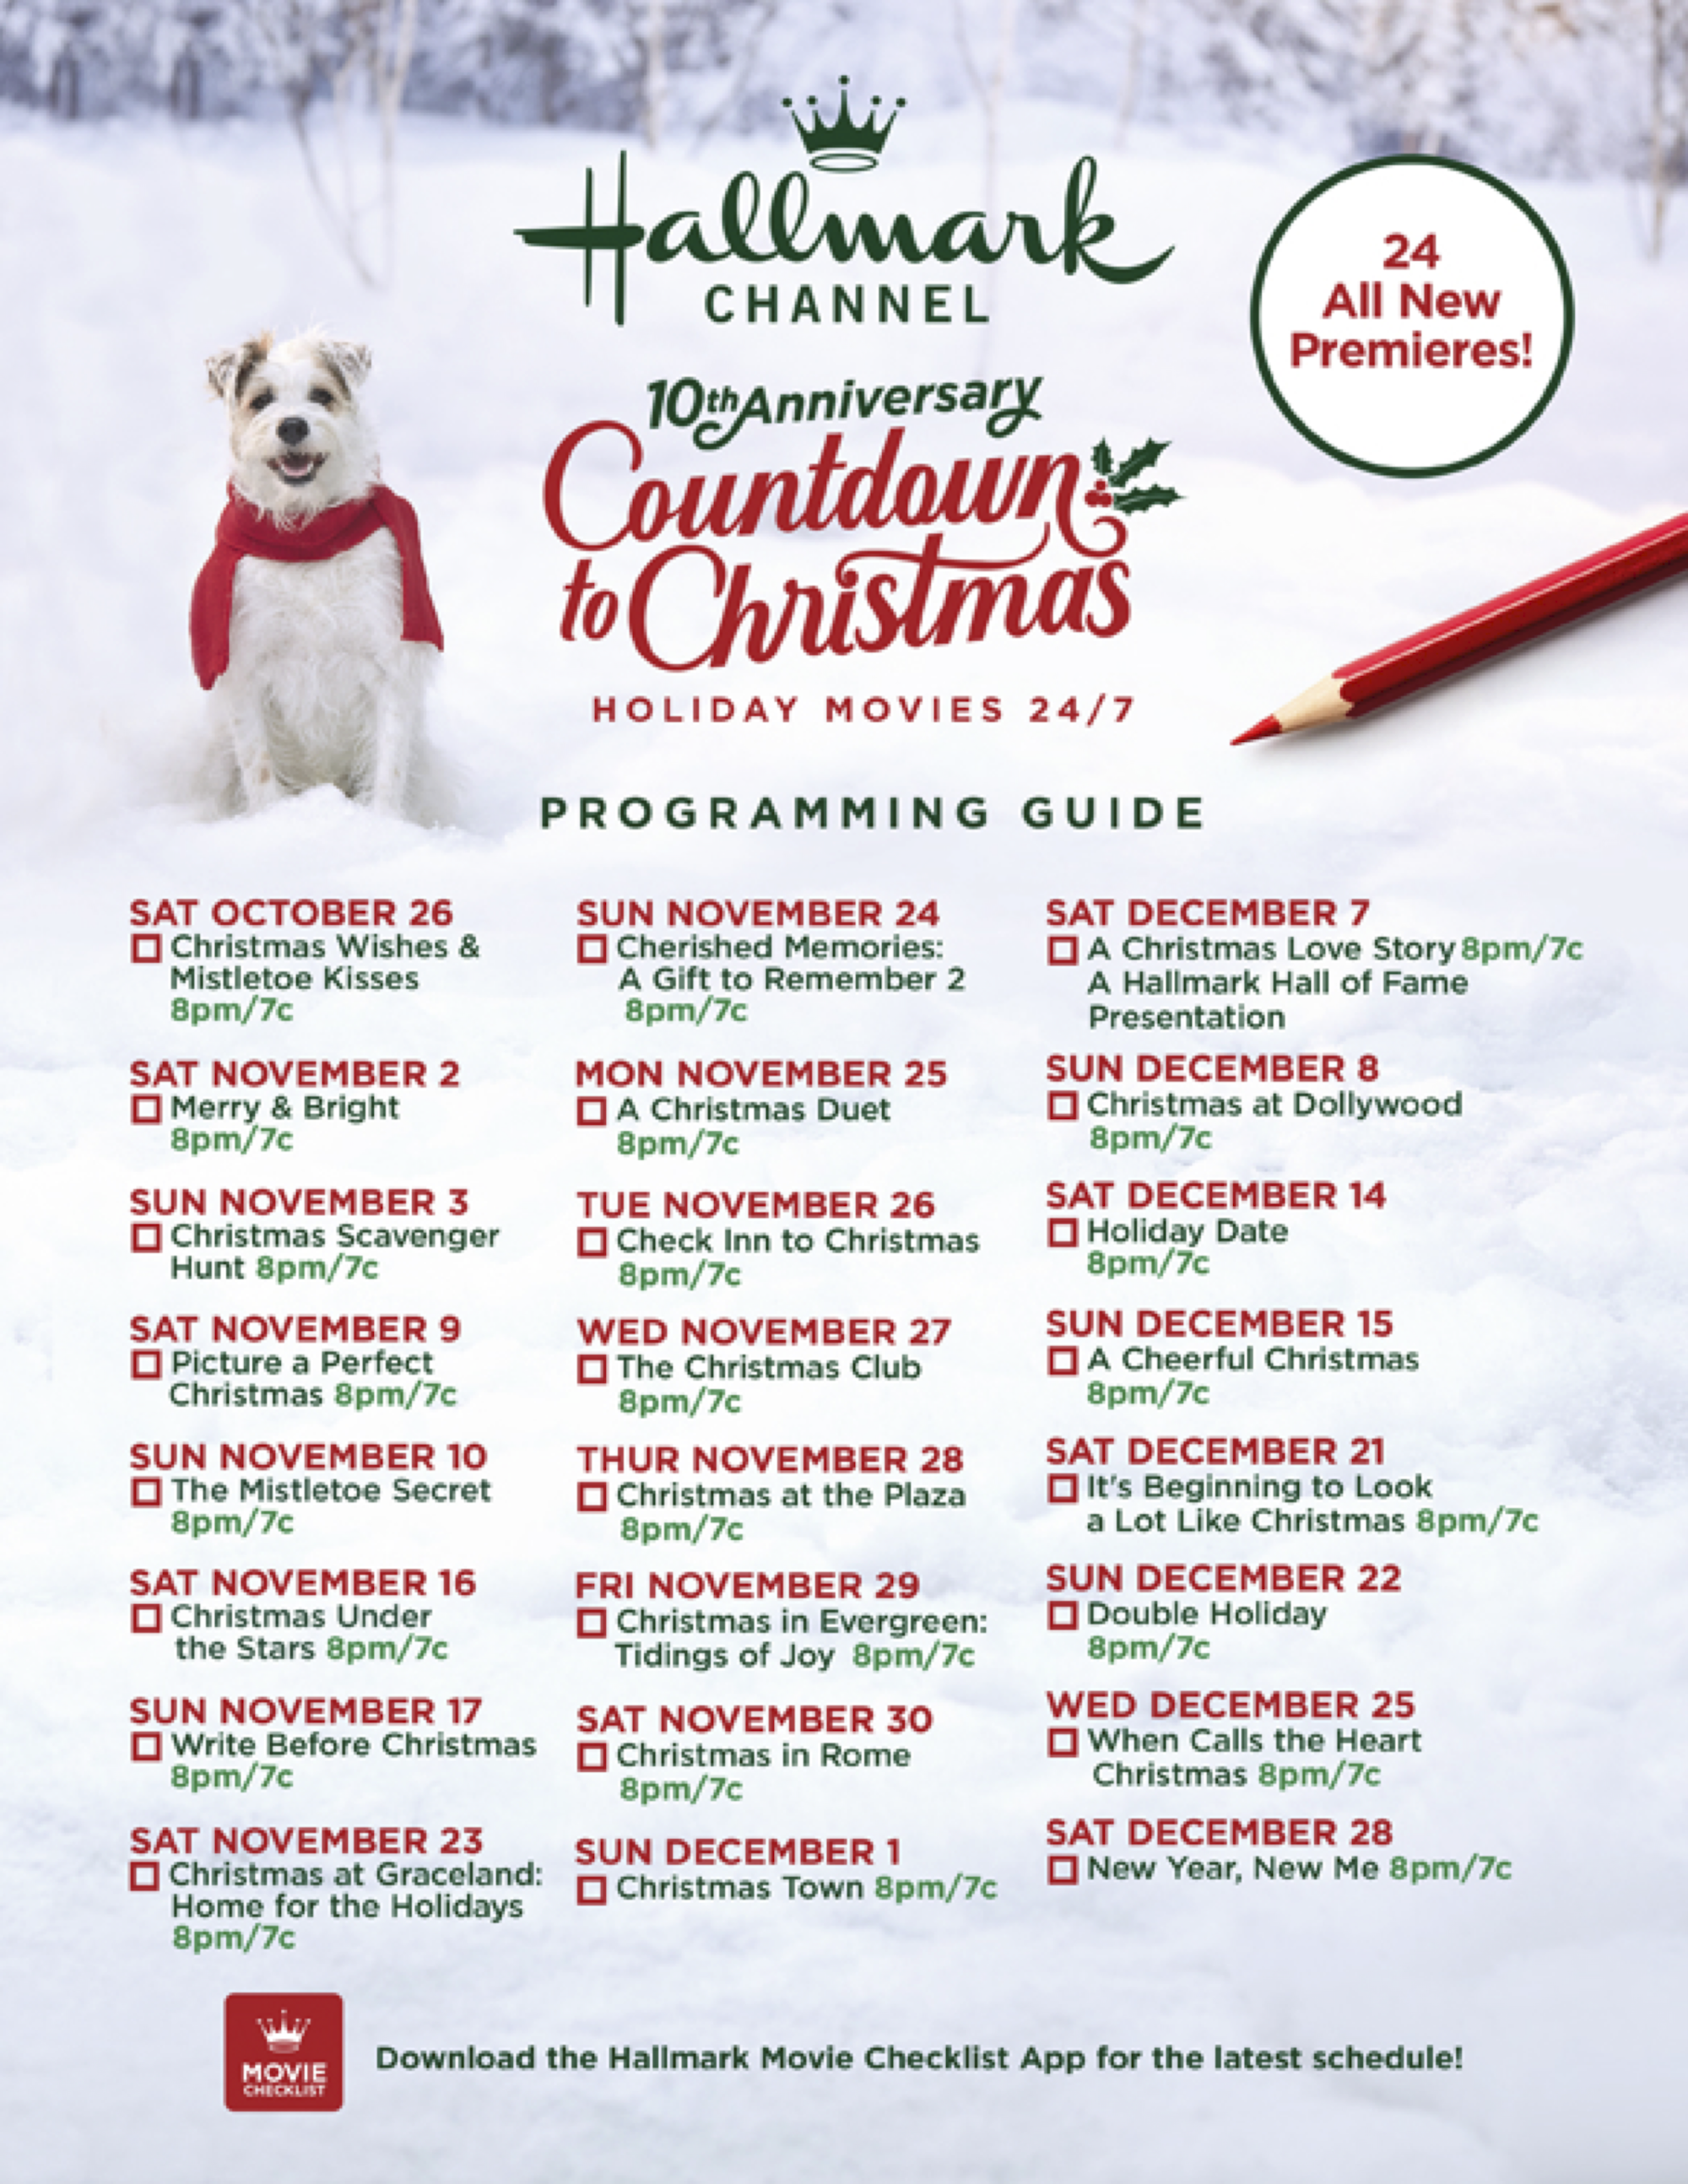 Christmas Premieres 2020 Save this 10th anniversary of Countdown to Christmas movie guide